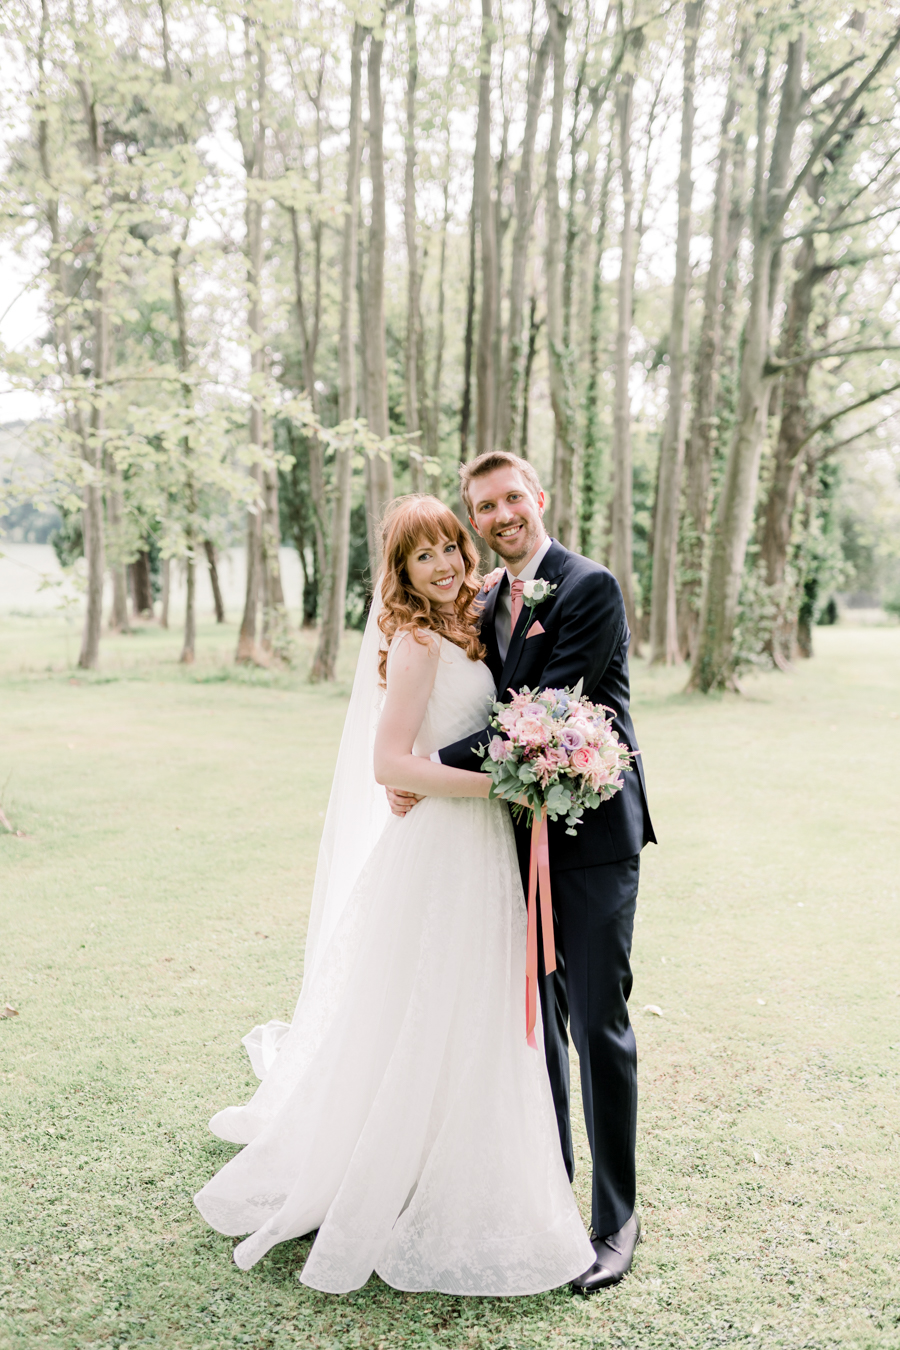 Fine art wedding photography blog from Brinsop Court UK, images by Joanna Briggs Photography (17)